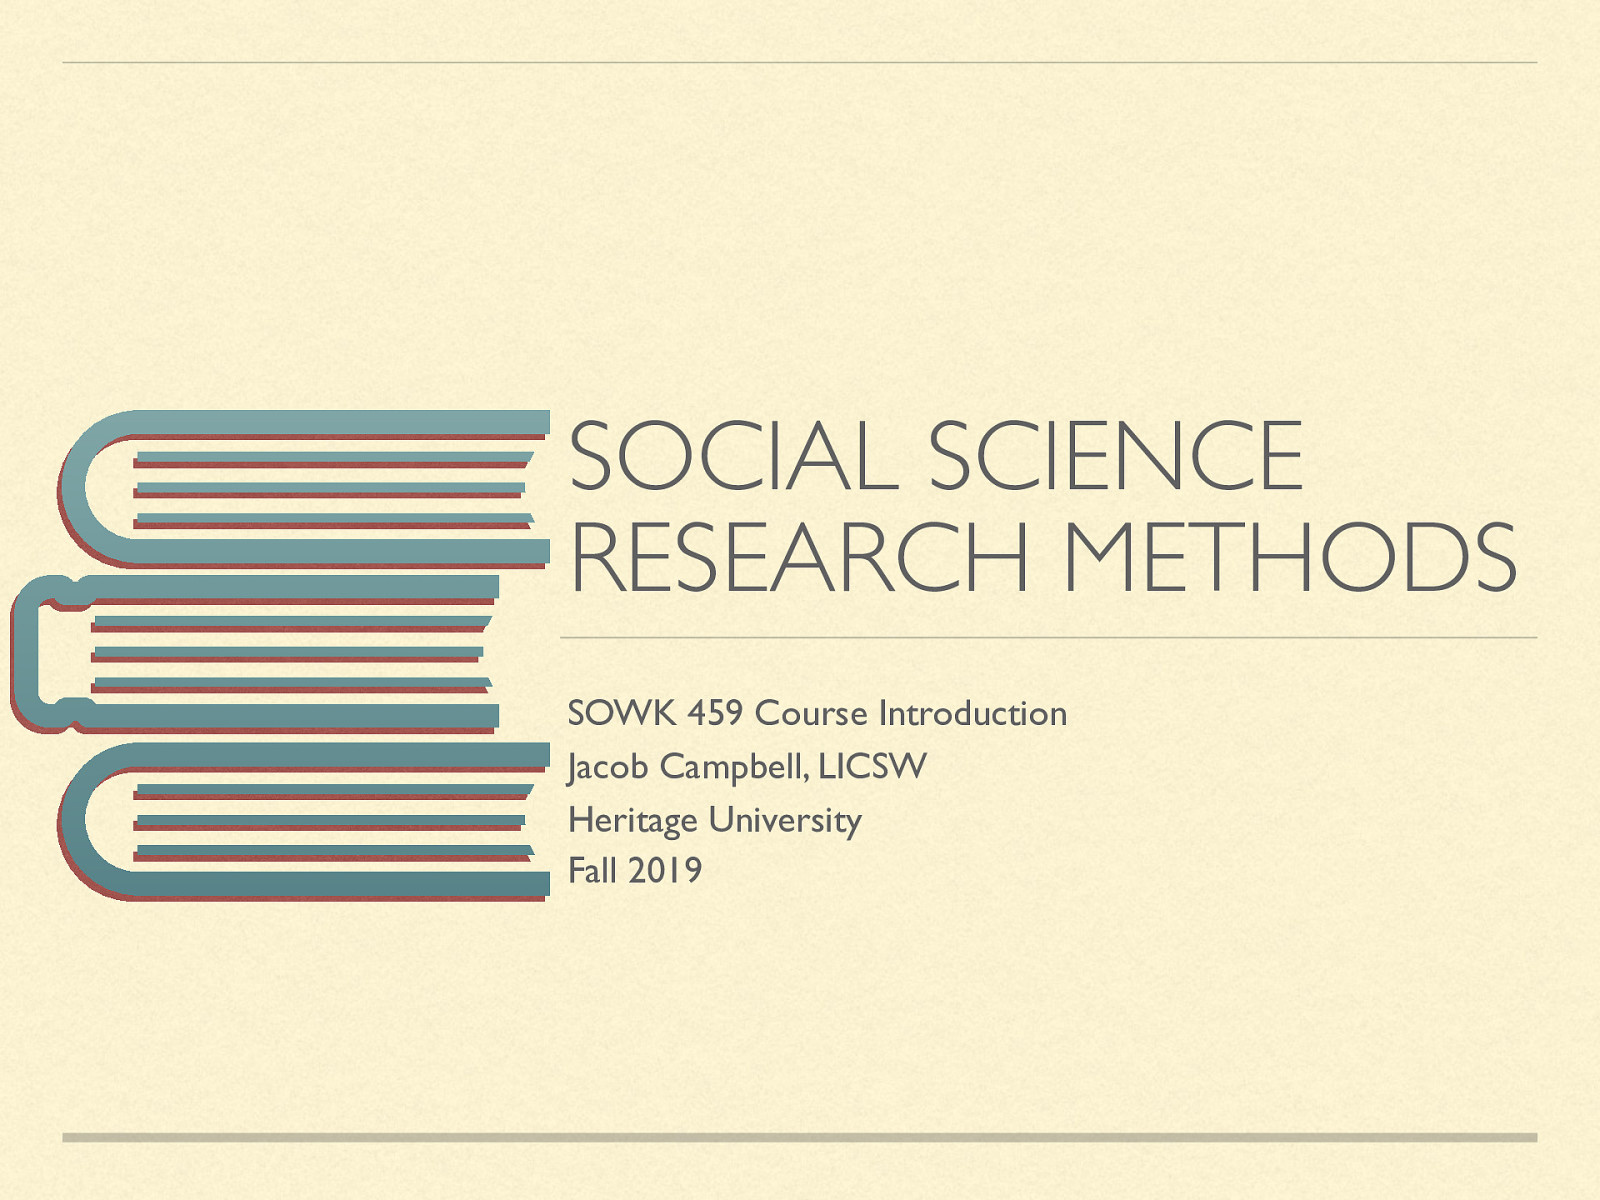 Introduction to Social Science Research Methods